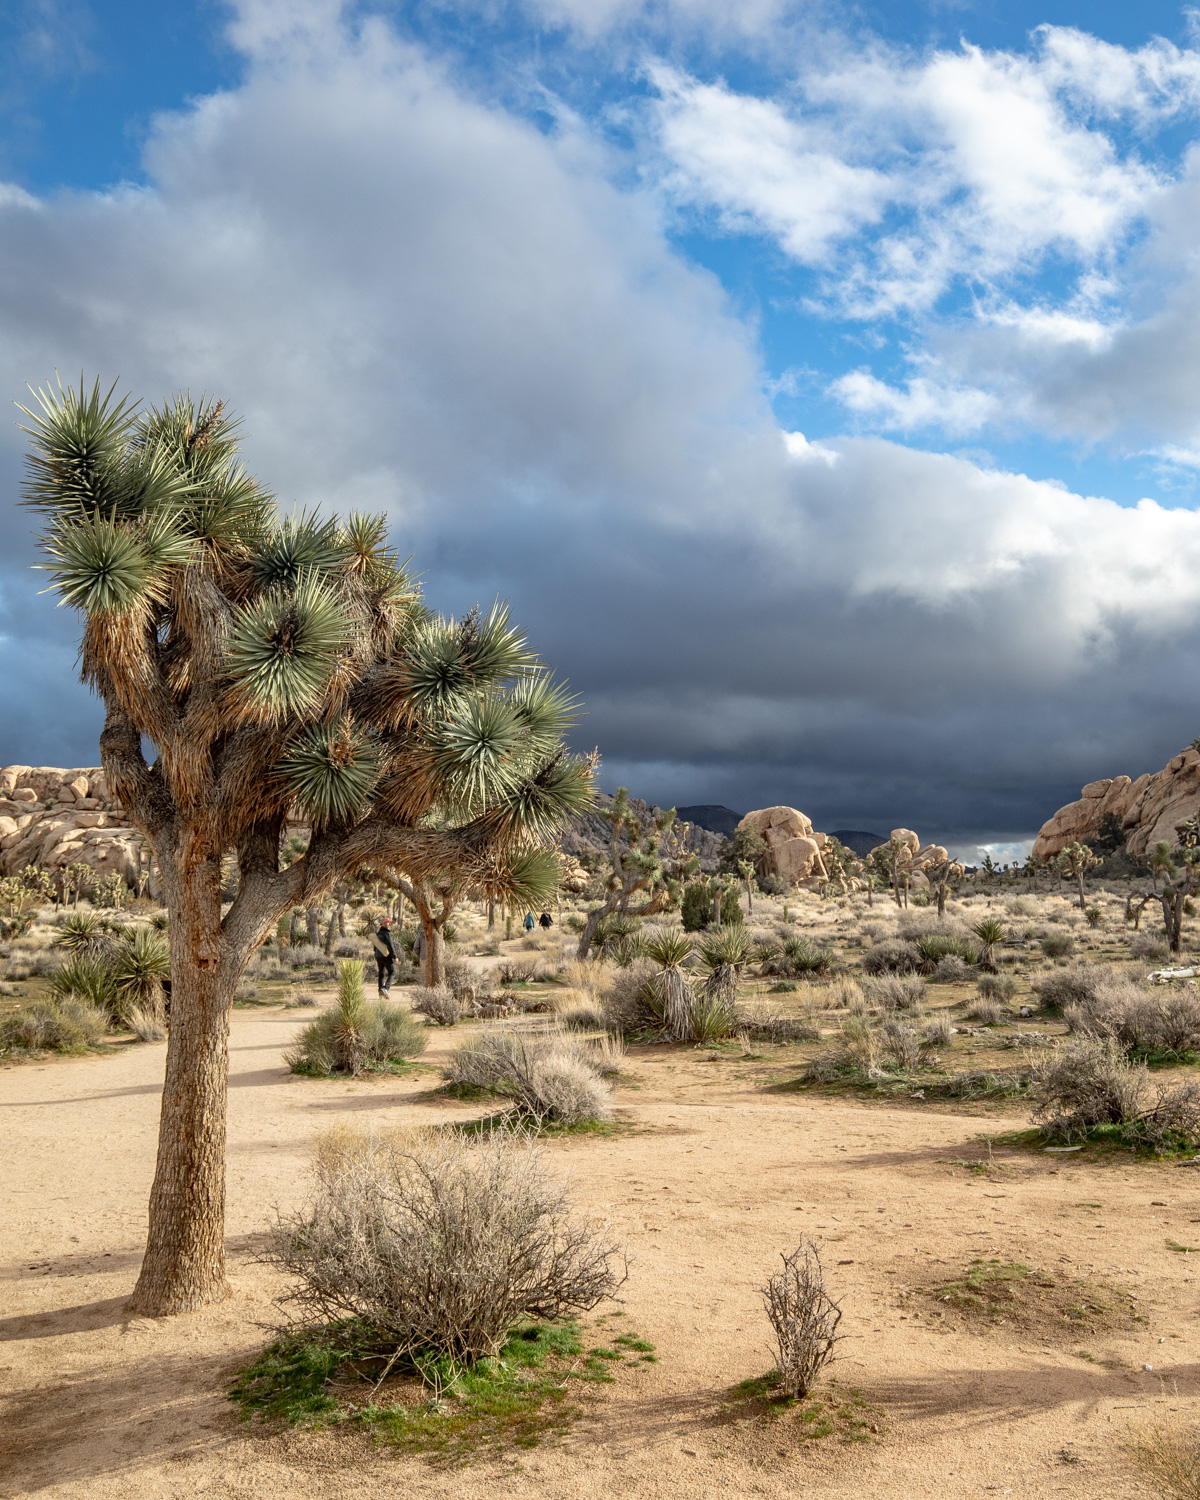 Joshua Tree National Park - How to travel america for $50 a day